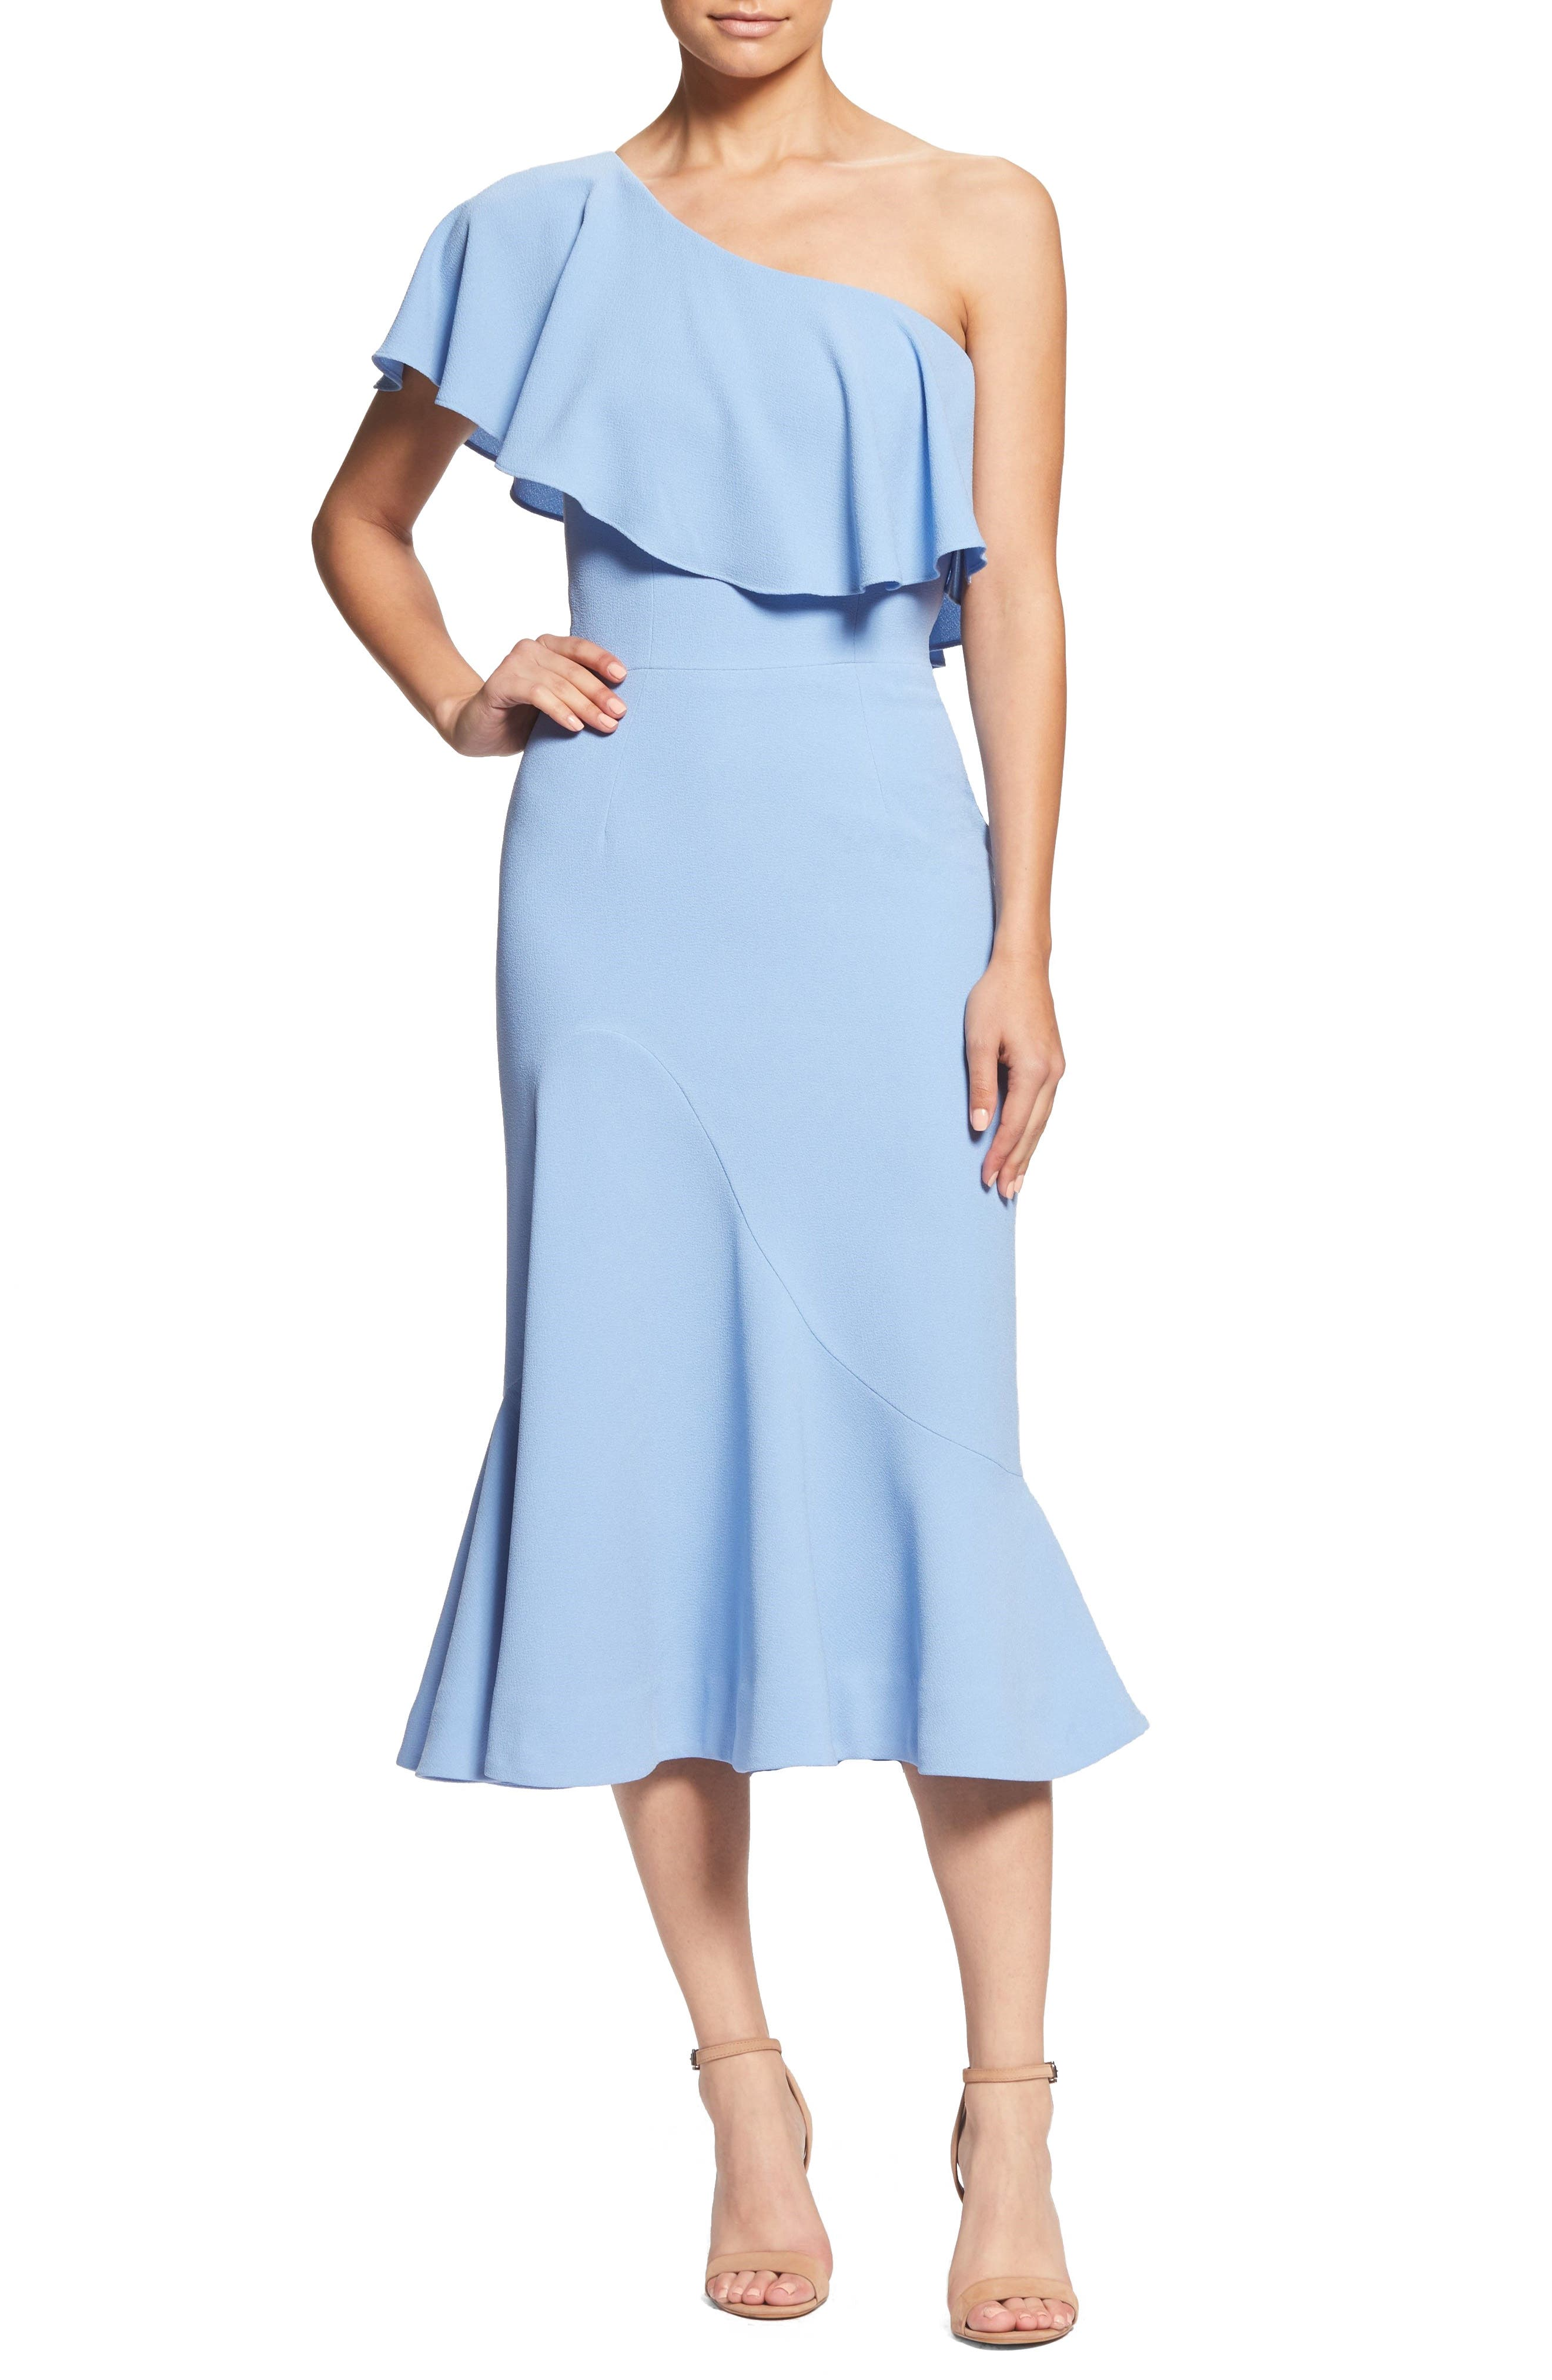 Raquel One-Shoulder Trumpet Dress,                             Main thumbnail 1, color,                             Ice Blue